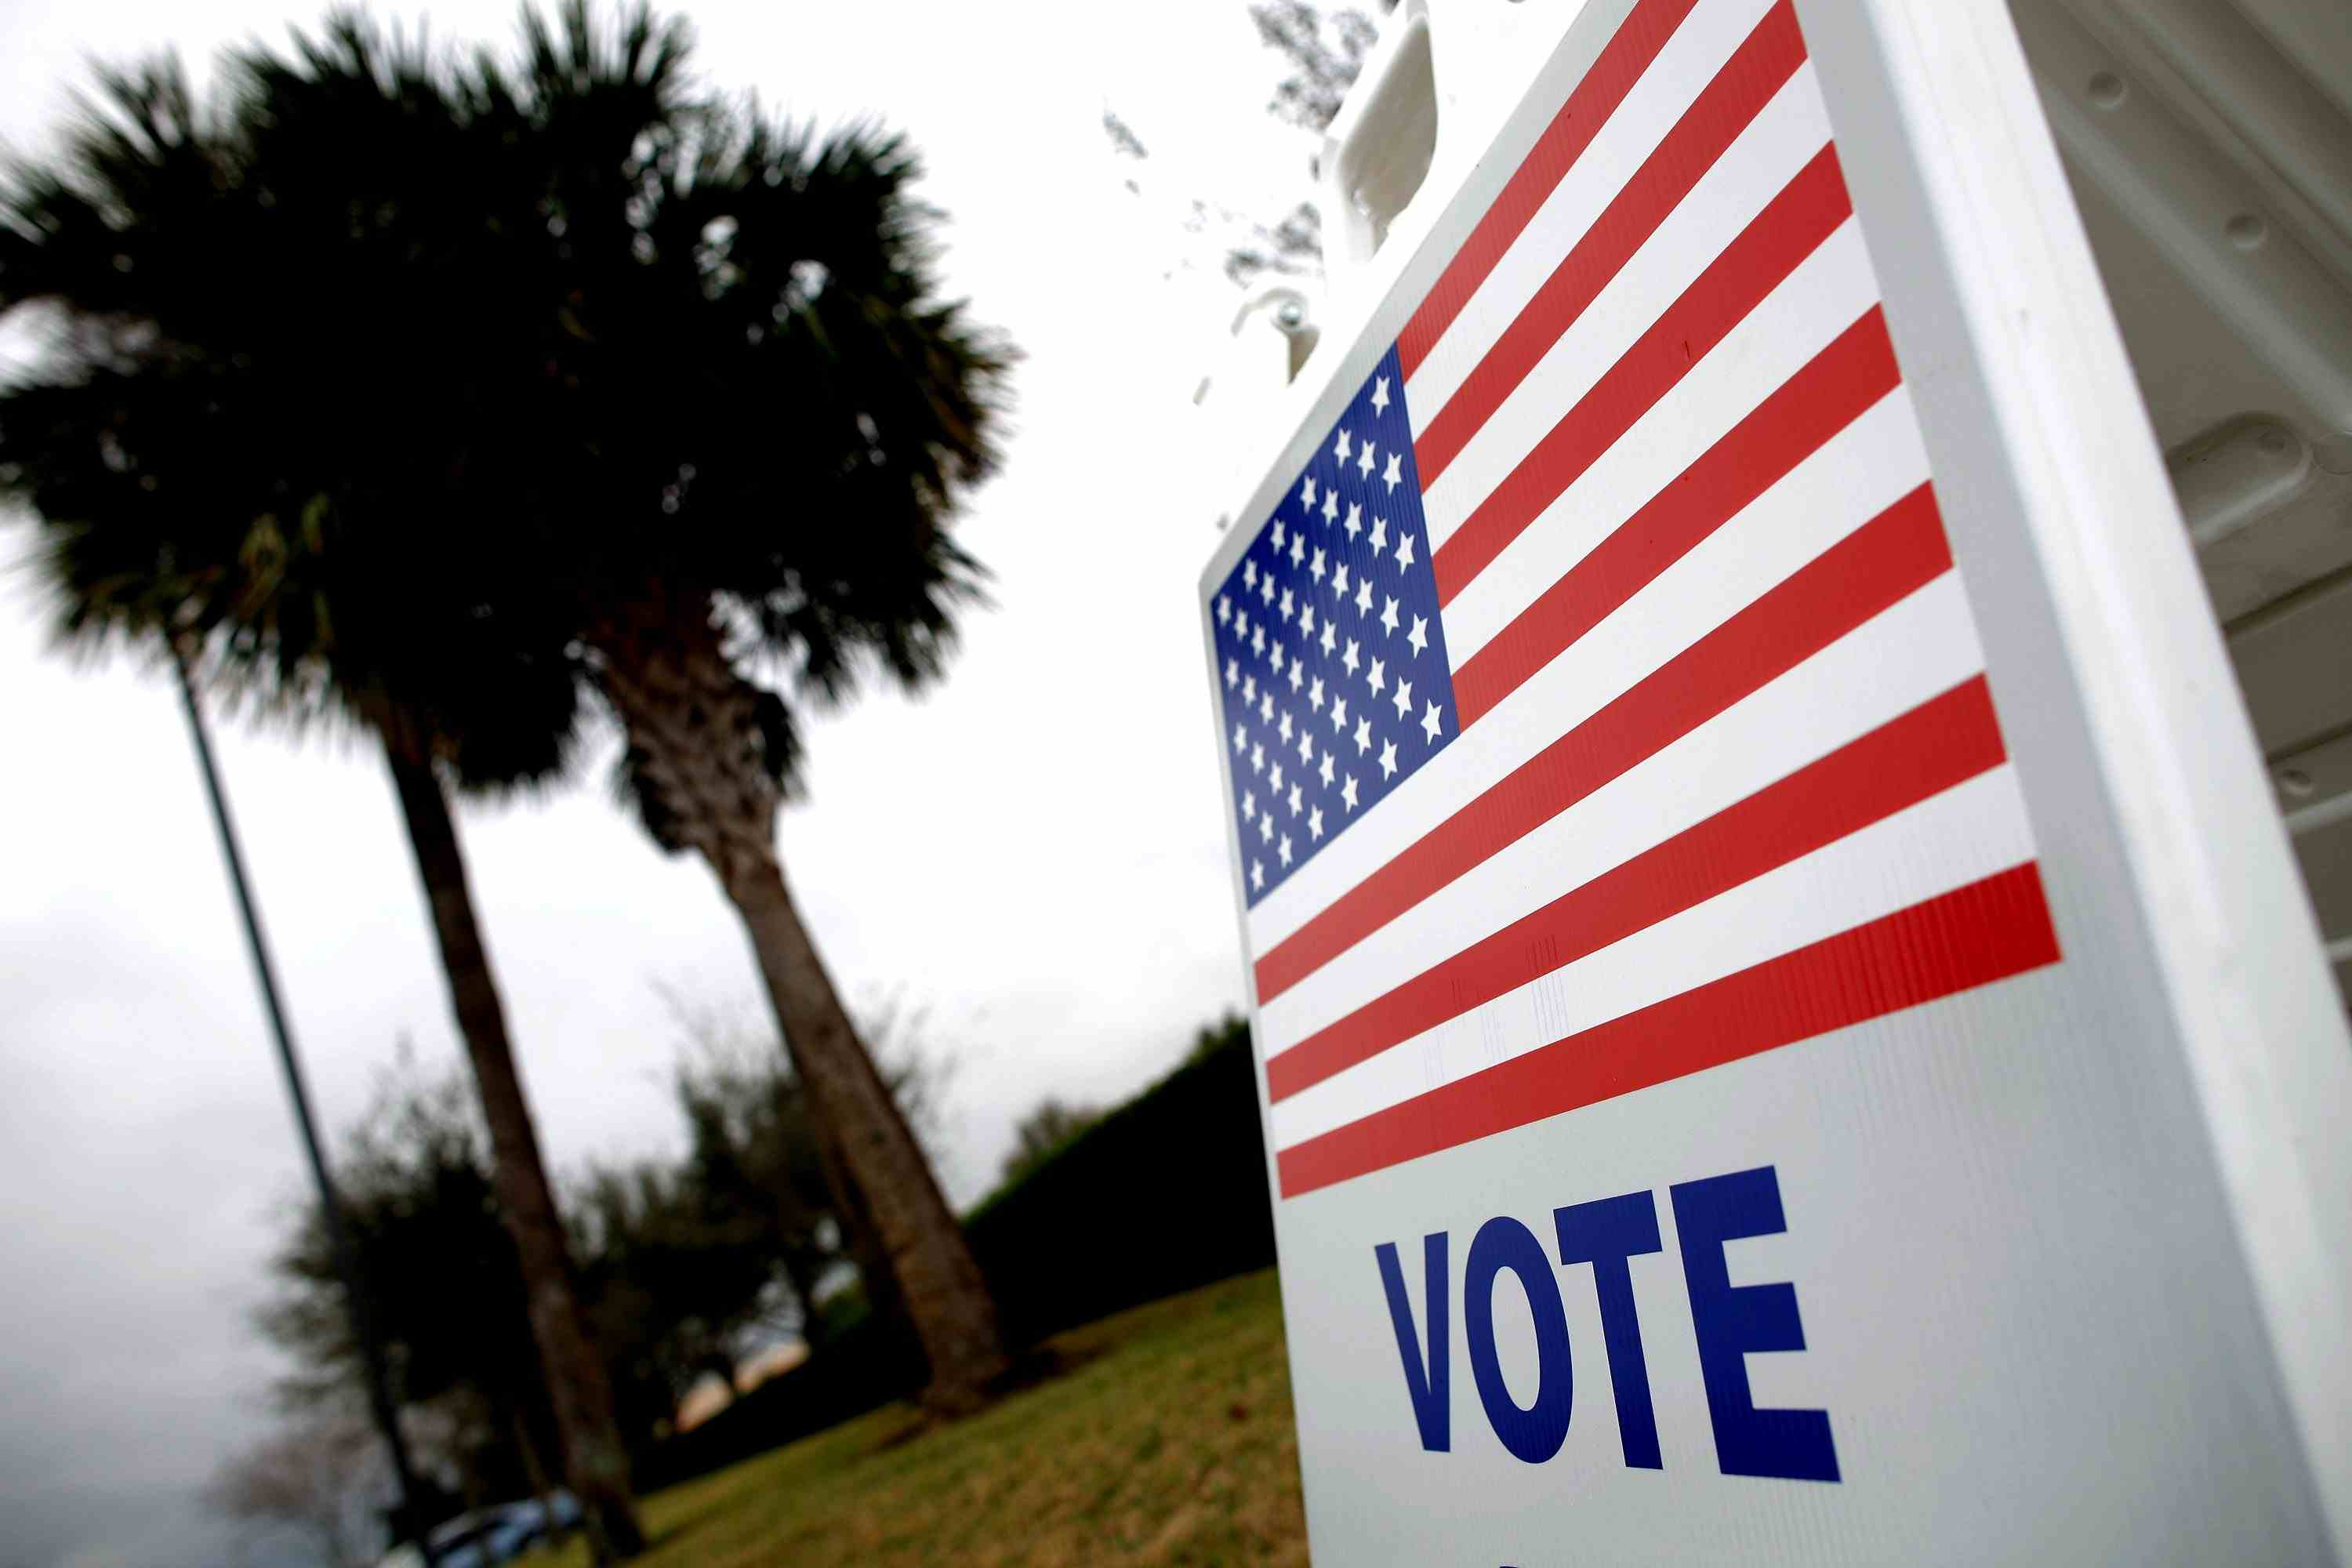 A sign instructs Floridians on where to vote in the 2012 primary